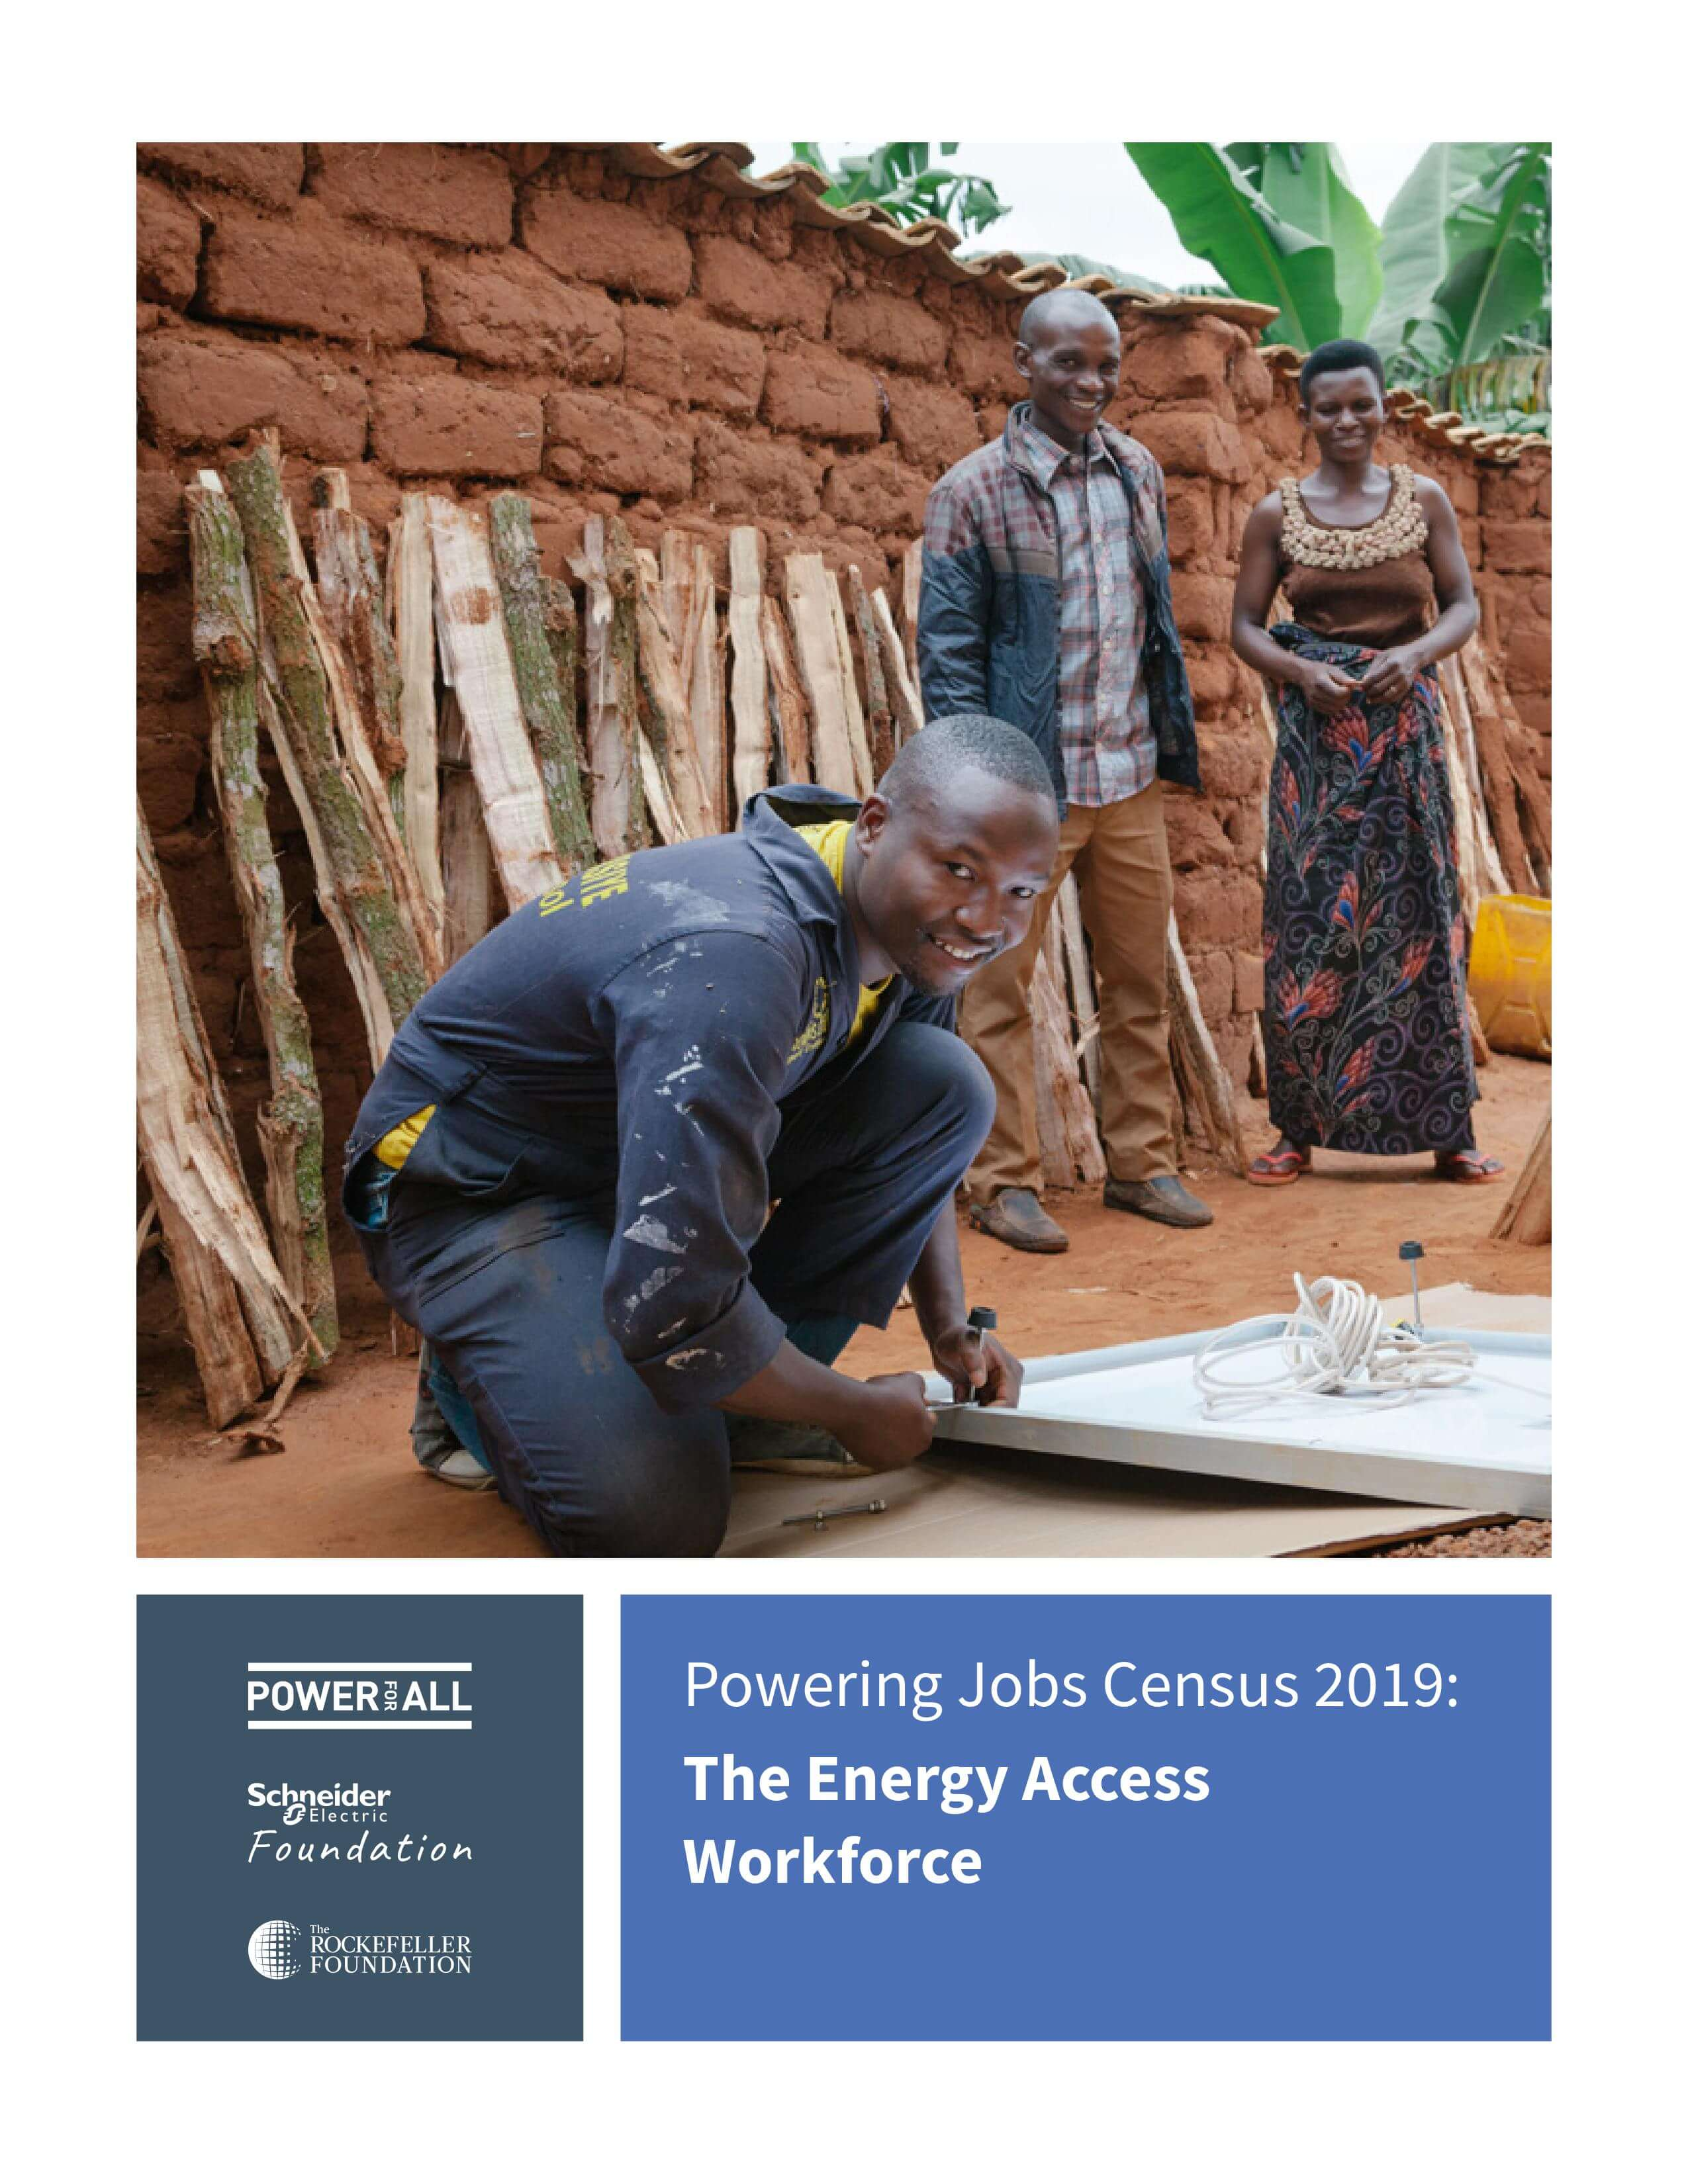 Renewable Energy Jobs in Sub-Saharan Africa and Asia 2019